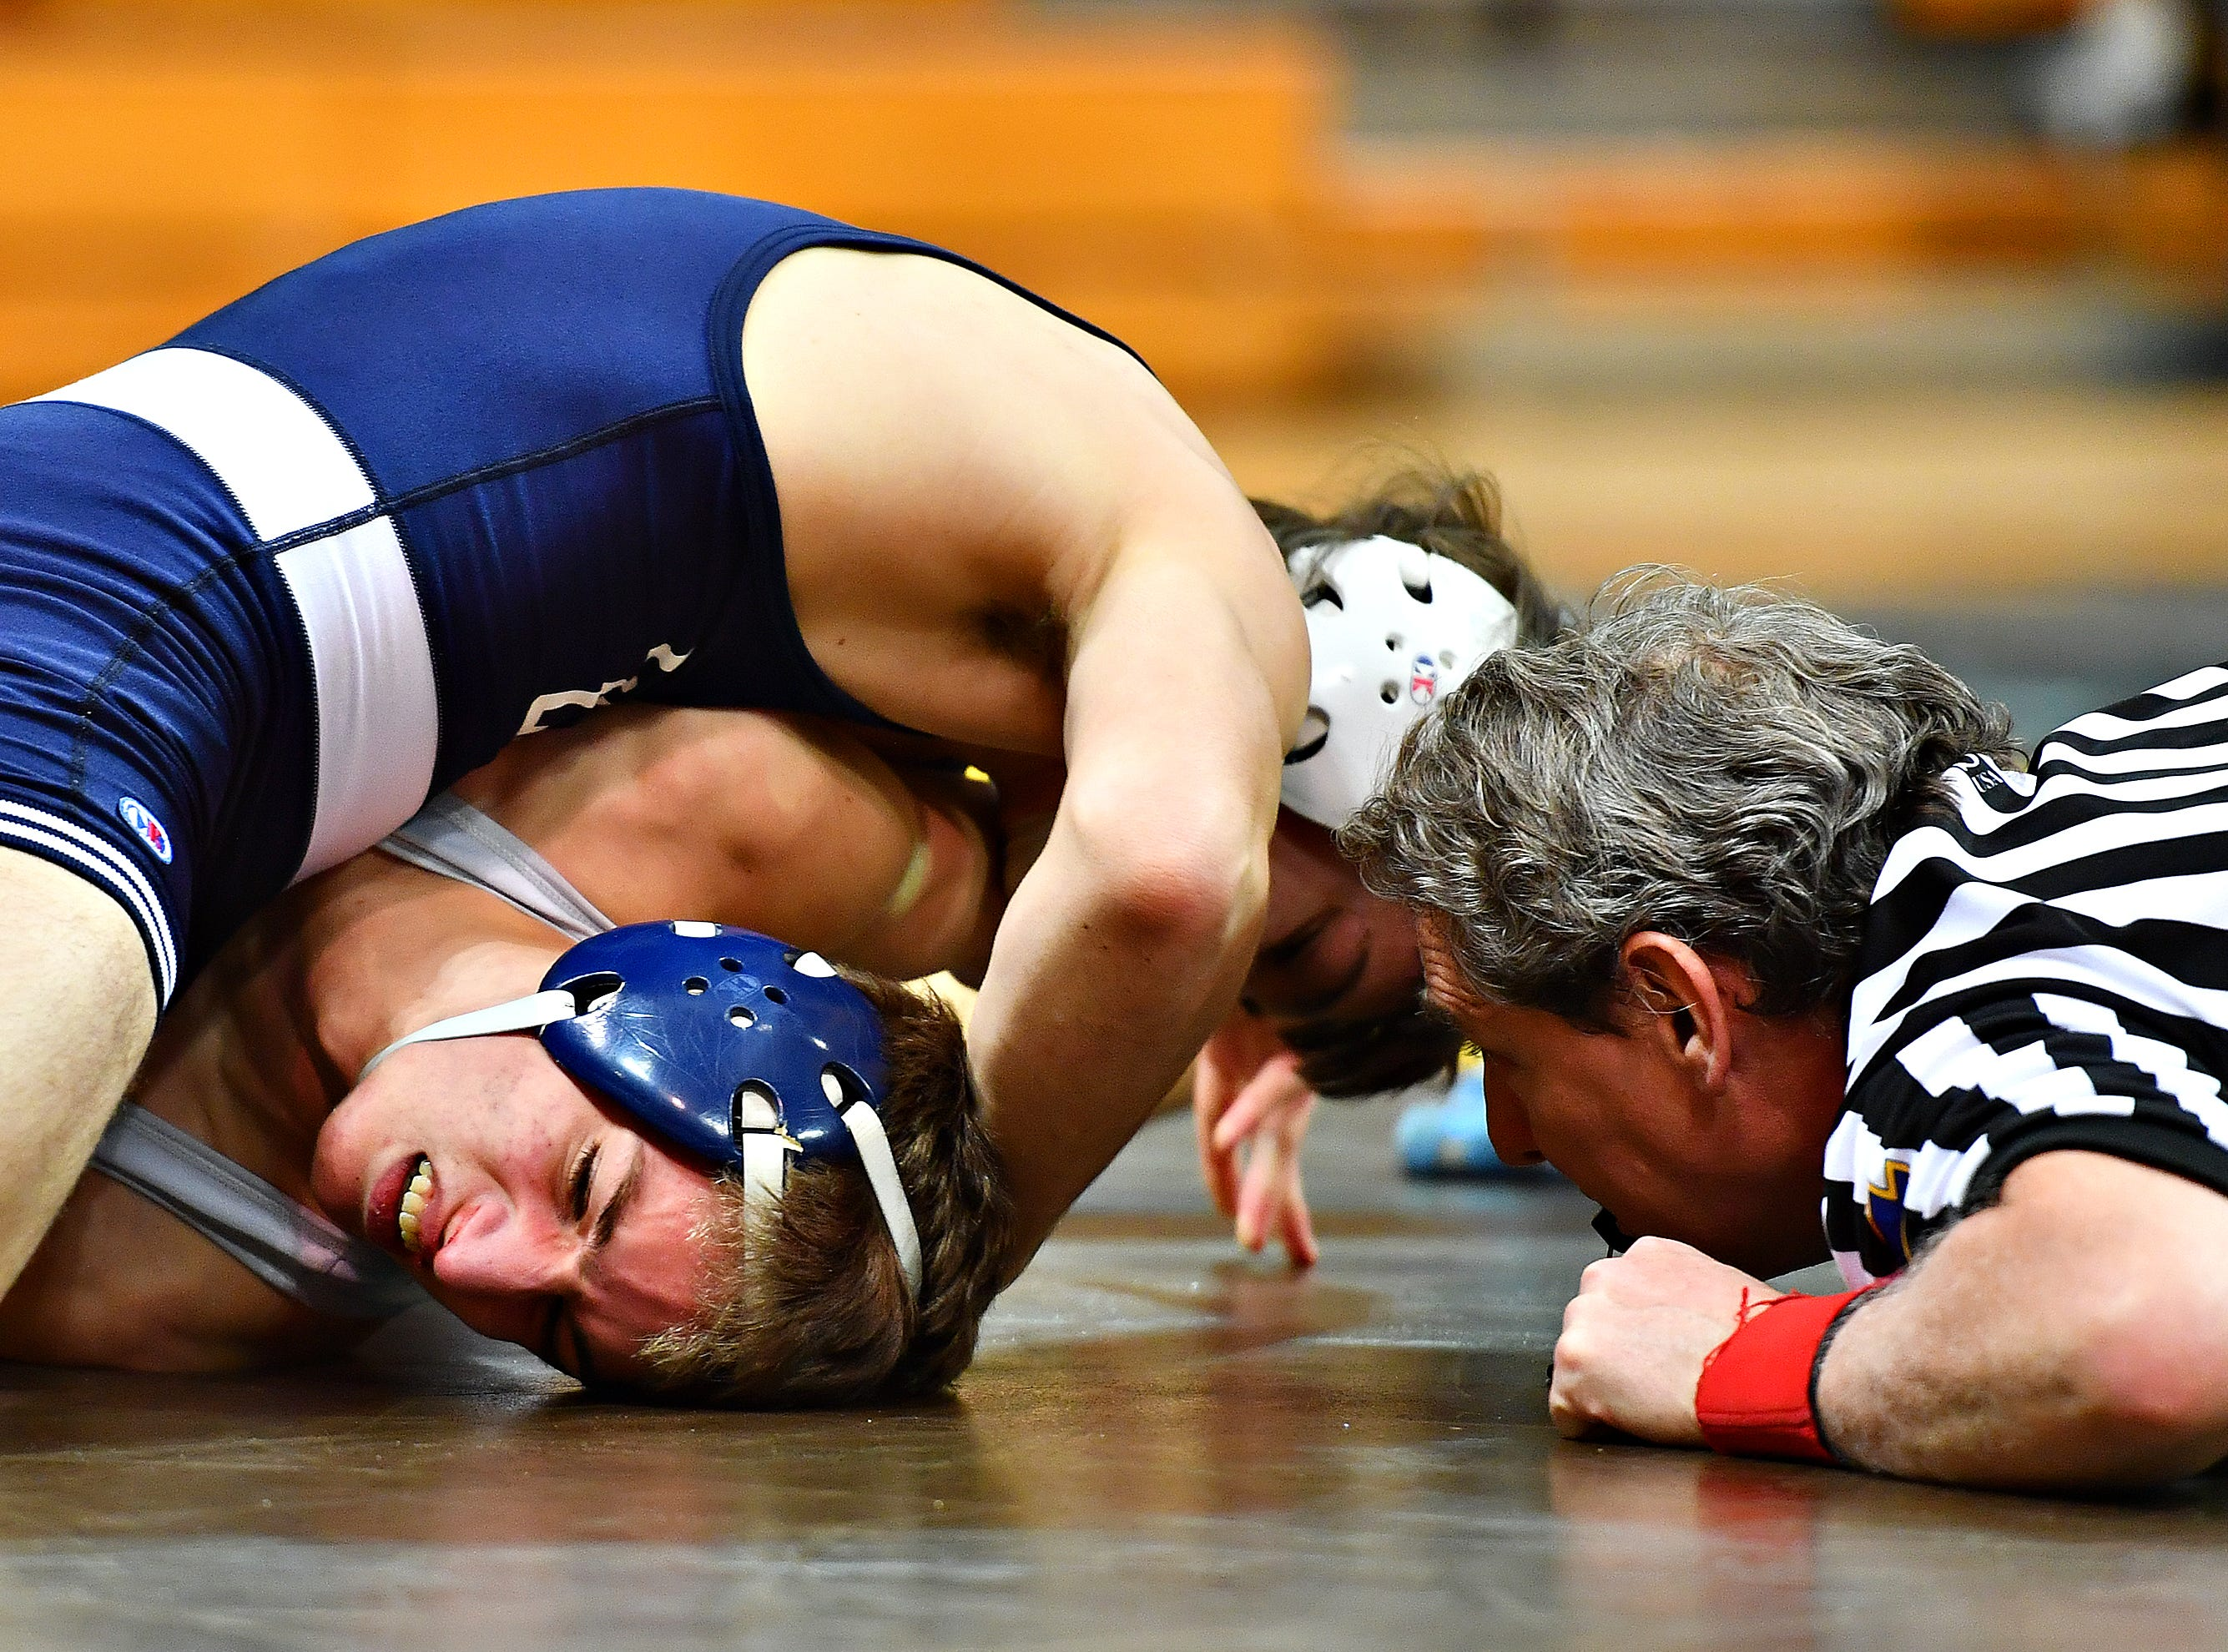 Dallastown's Carter MacDonald, lower left, wrestles Cedar Cliff's Creed Bogardus in the 120 pound weight class during District 3, Class 3A wrestling championship action at Milton Hershey High School in Hershey, Saturday, Feb. 2, 2019. Dawn J. Sagert photo